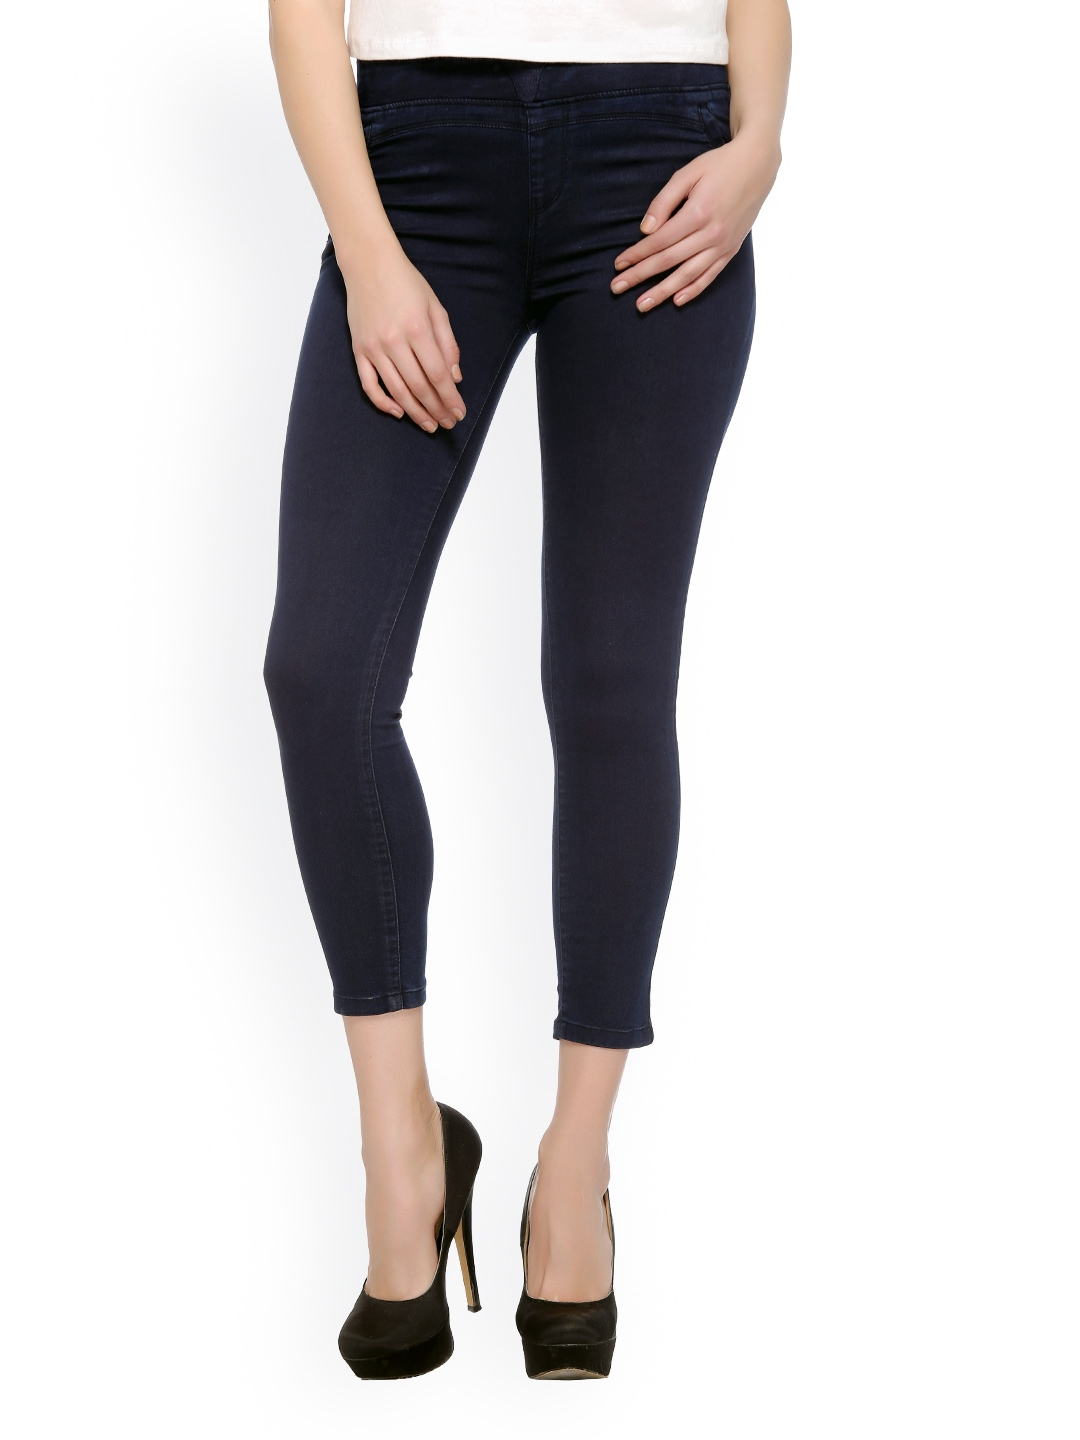 Jeans & Jeggings for Women. Getting dressed every day is a stressful job for women. Even though we love dressing up, deciding what to wear is tedious.